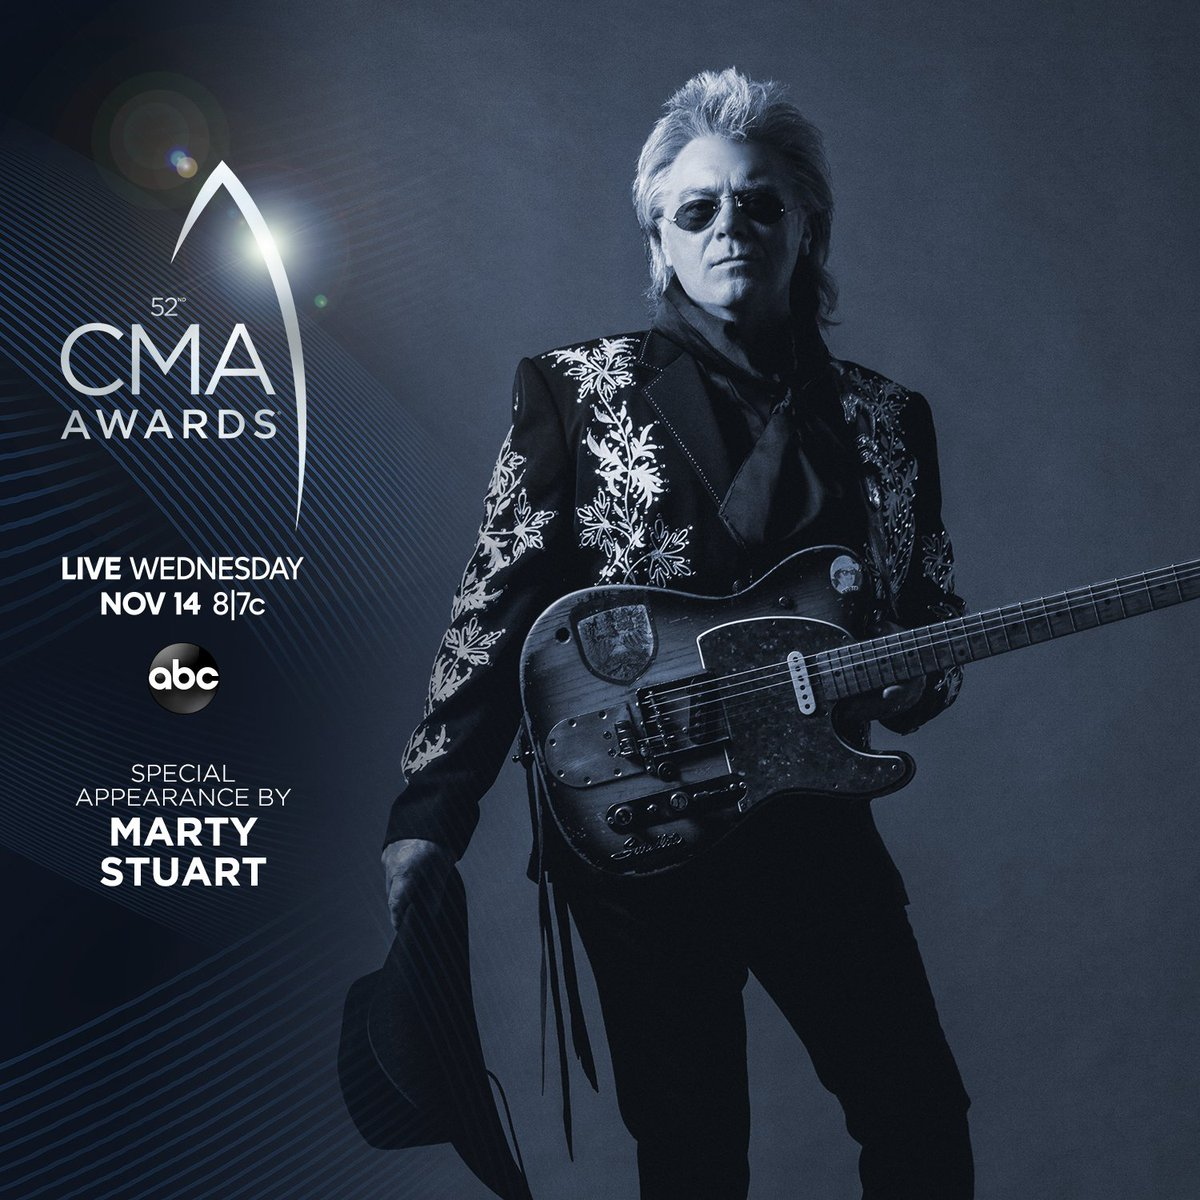 Just announced: @MartyStuartHQ will make a special appearance at the #CMAawards this Wednesday at 8|7c on @ABCNetwork. CMAawards.com